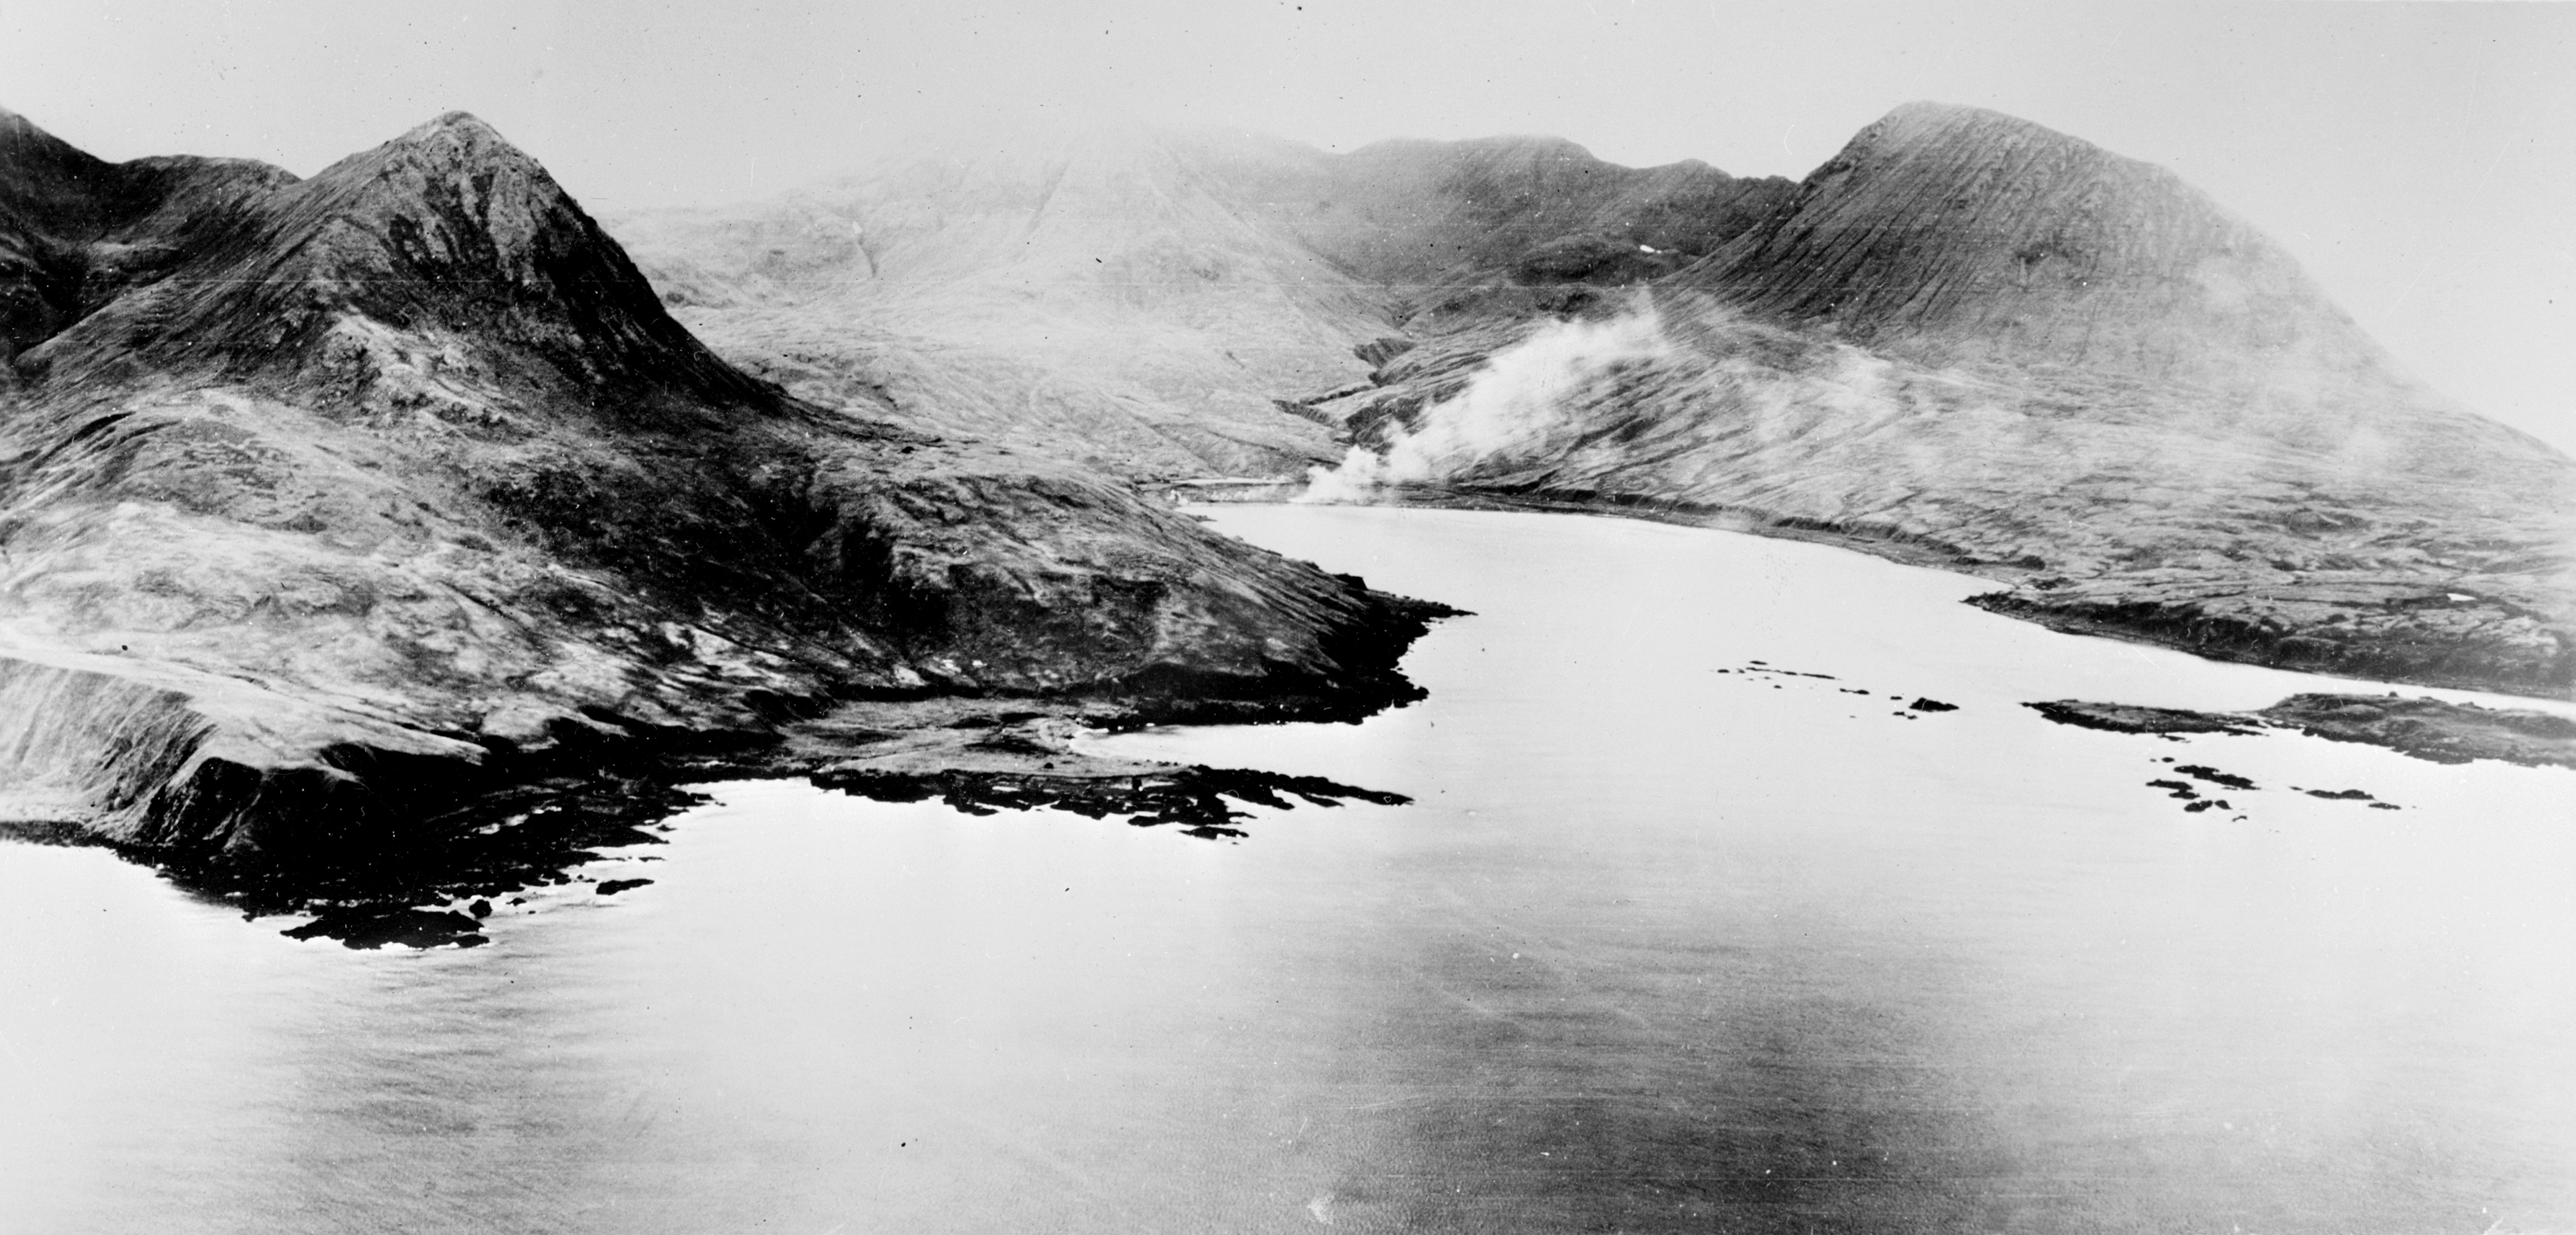 Chichagof Harbor under attack during the Allied liberation of Attu Island, Alaska, between May 11 and 30, 1943.